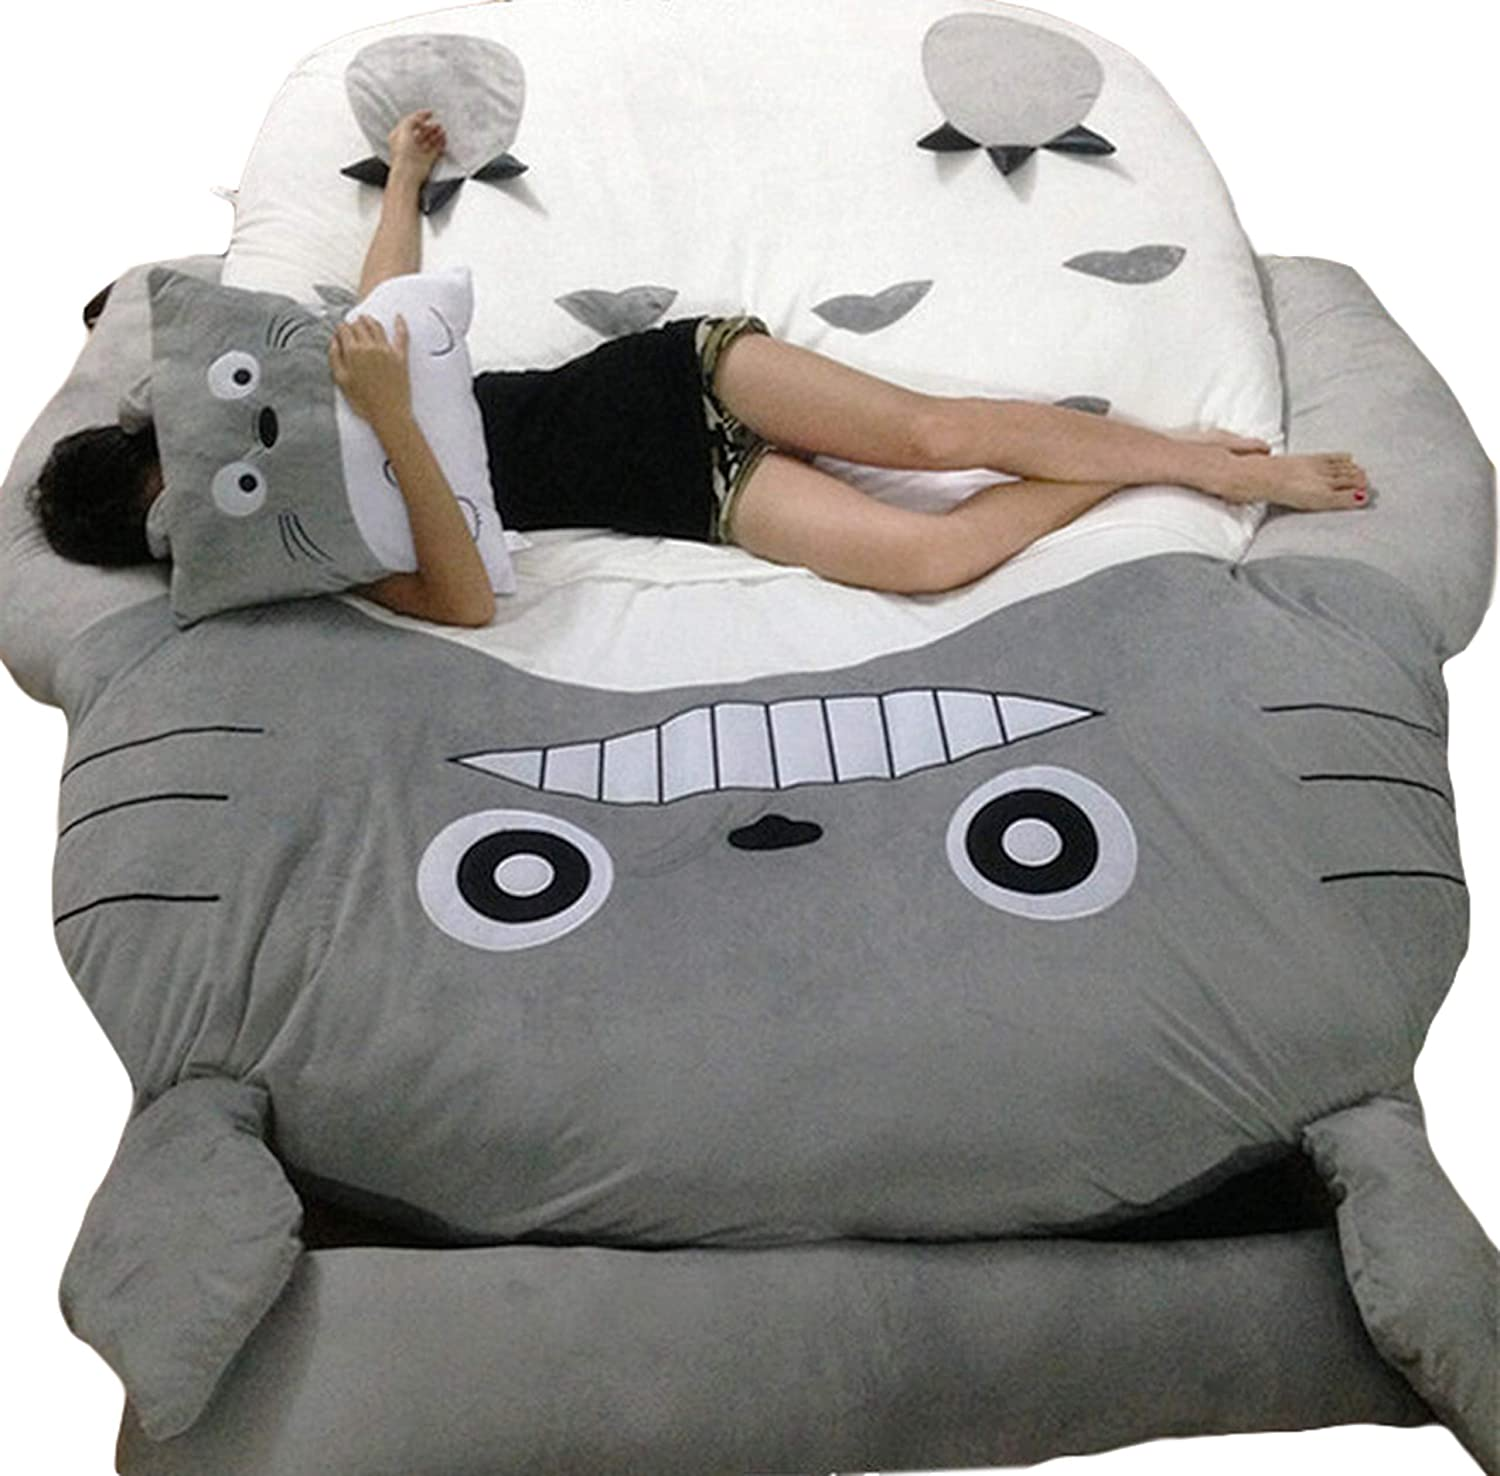 Christmas Totoro Bed Design Big Sofa Totoro Bed Mattress Child's Sleeping Bag Mattress BEDTOTORO